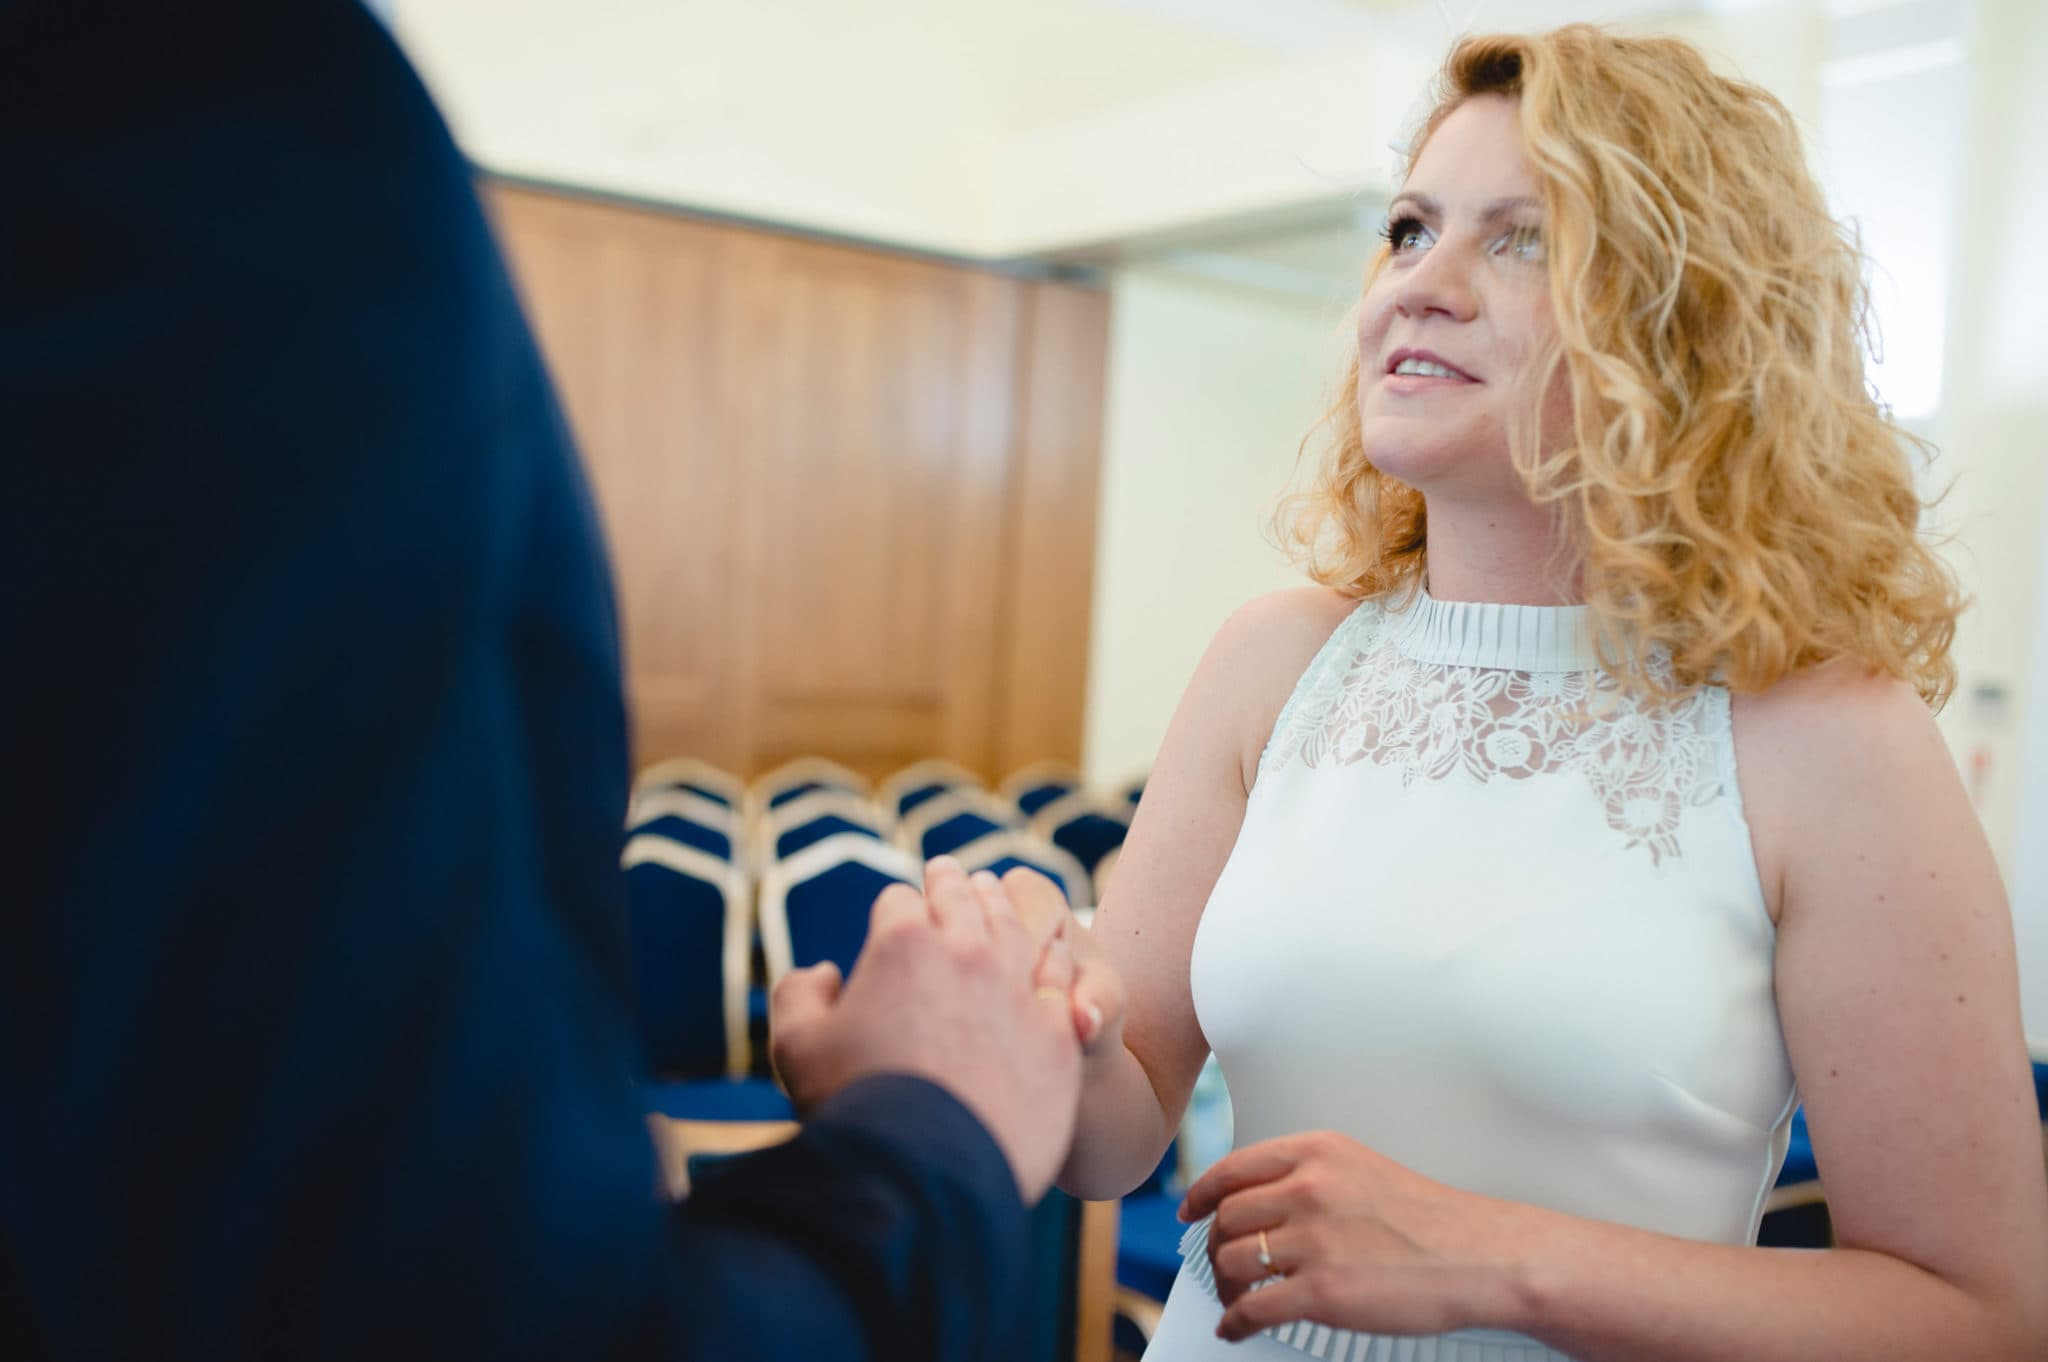 bride and groom Bromley on Bow Registry office, London UK Wedding photography ceremony room with the guest ring exchange